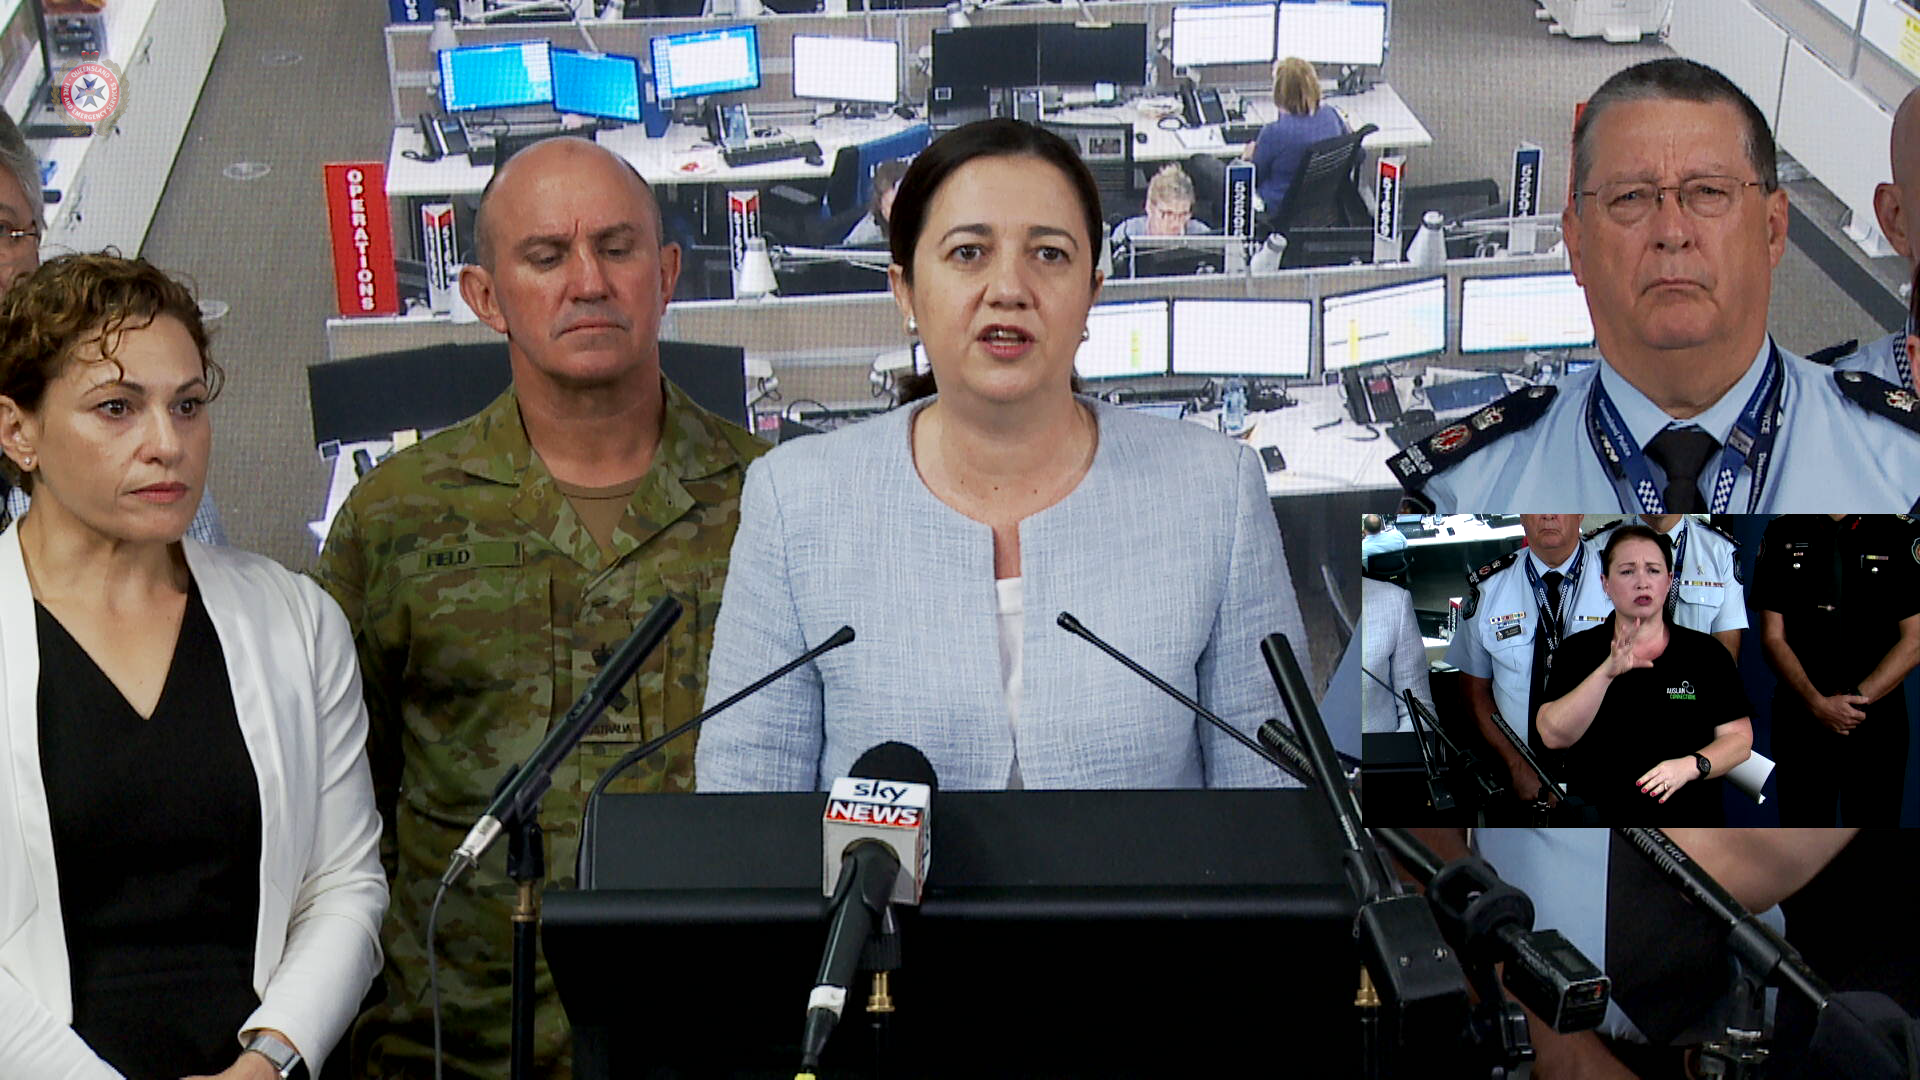 Queensland Premier, Brigadier Chris Field, and Emergency Services on the flooding in Rockhampton and recovery throughout the state in the wake of severe weather conditions caused by ex-Cyclone Debbie.